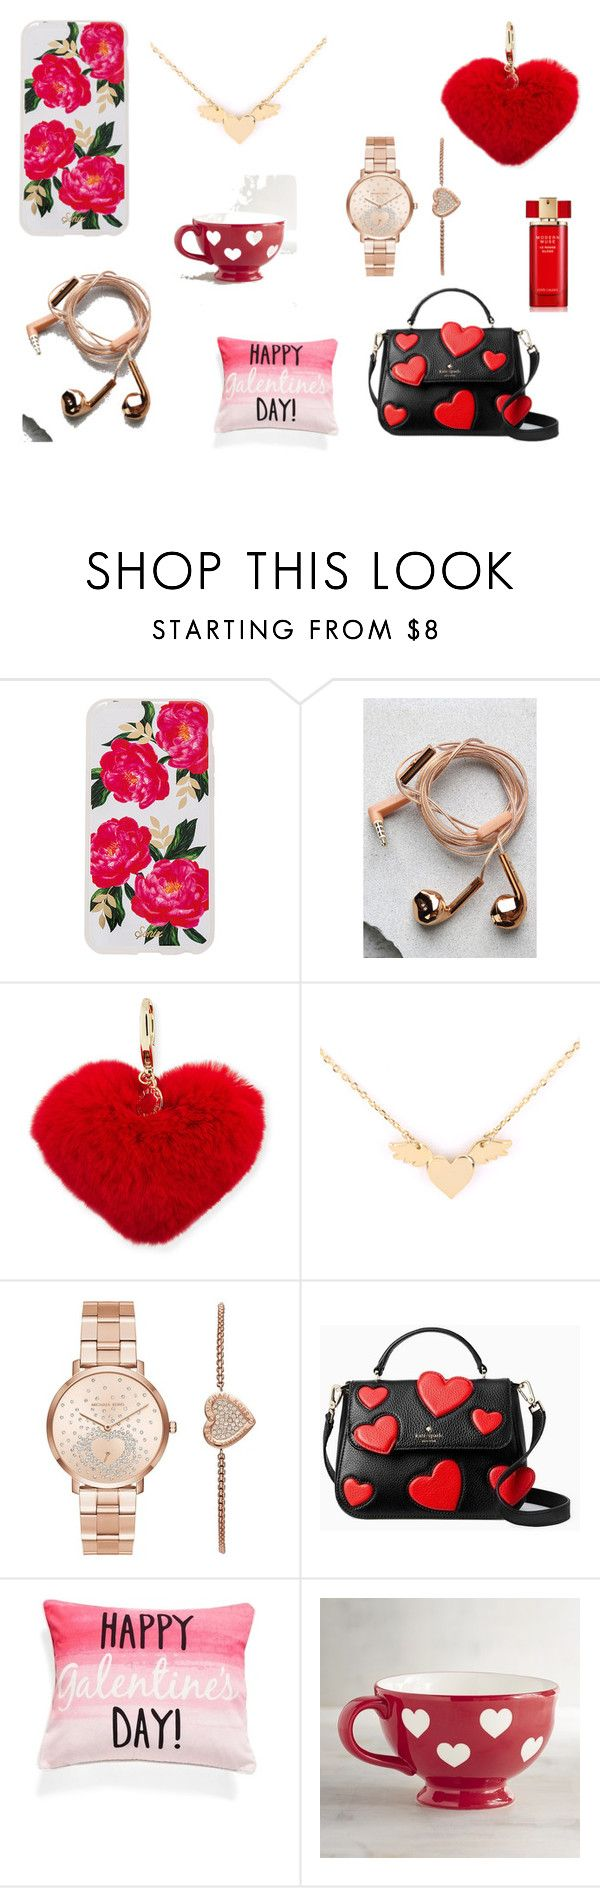 """""""Valentine's day gift guide for her"""" by lacreativeme on Polyvore featuring Sonix, Happy Plugs, Rebecca Minkoff, Michael Kors, Kate Spade, Levtex, Pier 1 Imports and Estée Lauder"""